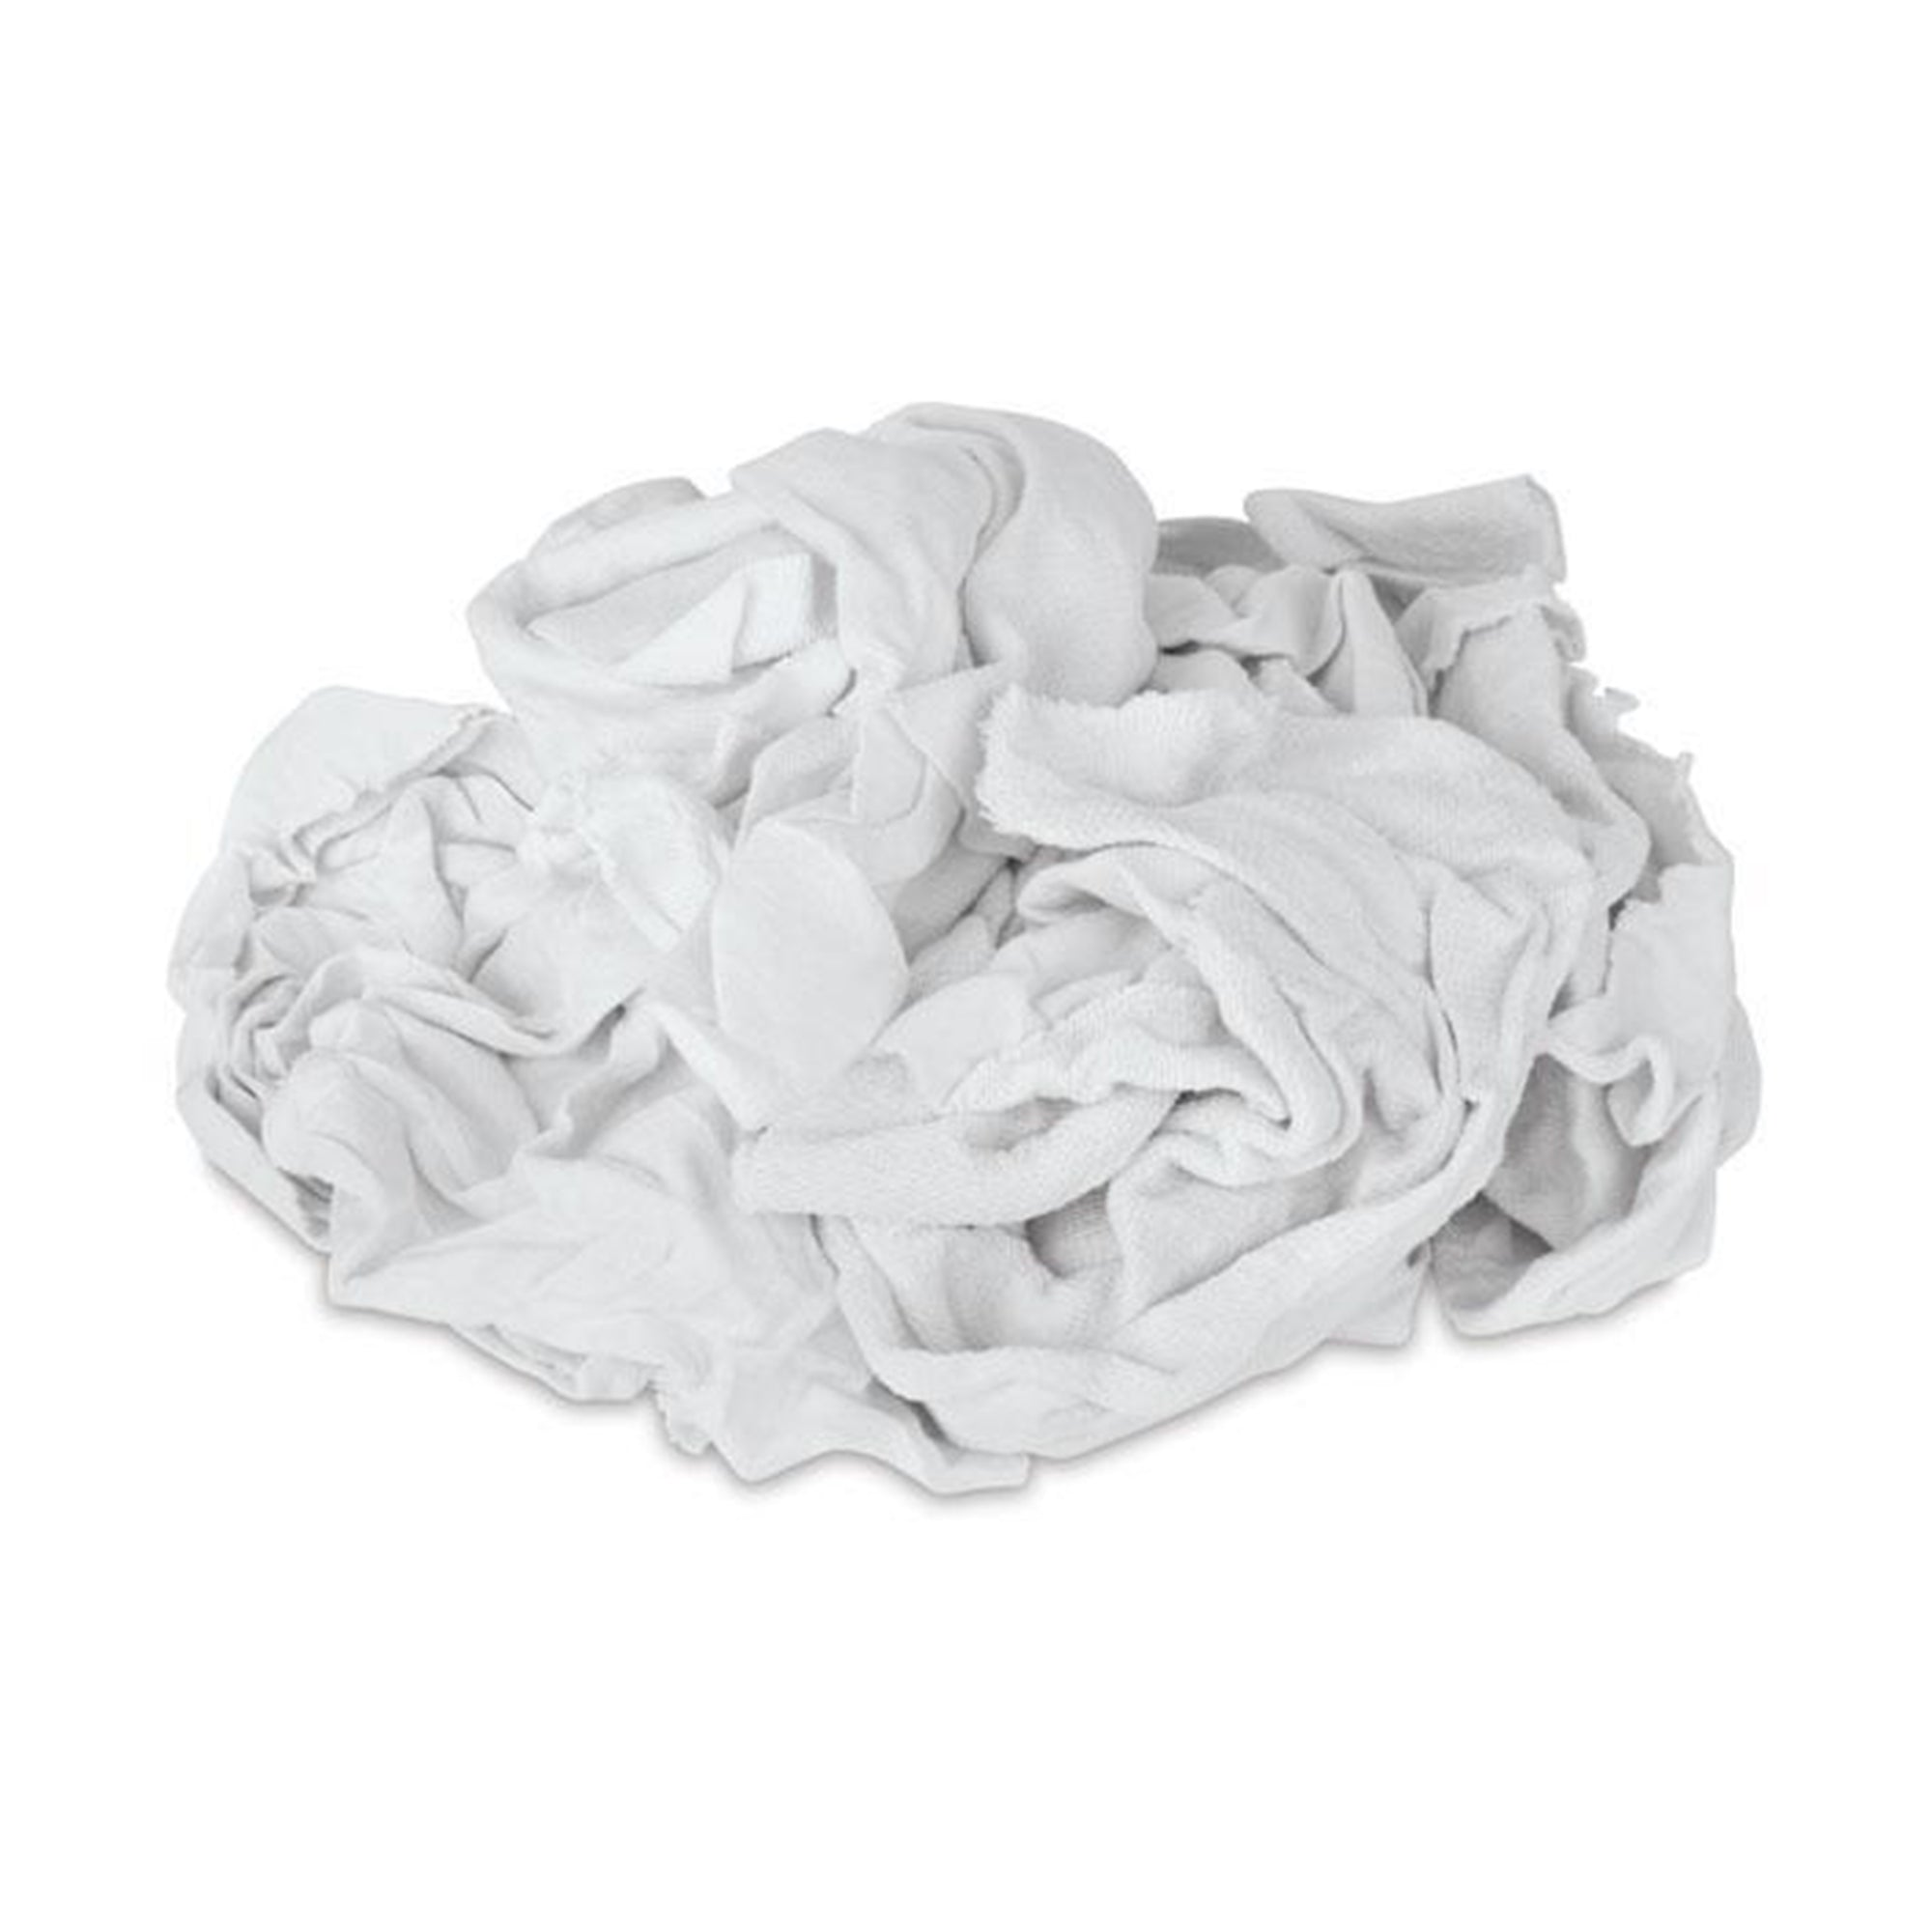 Bag of Rags-White new knit, available at Catalina Paints in Los Angeles County, CA.